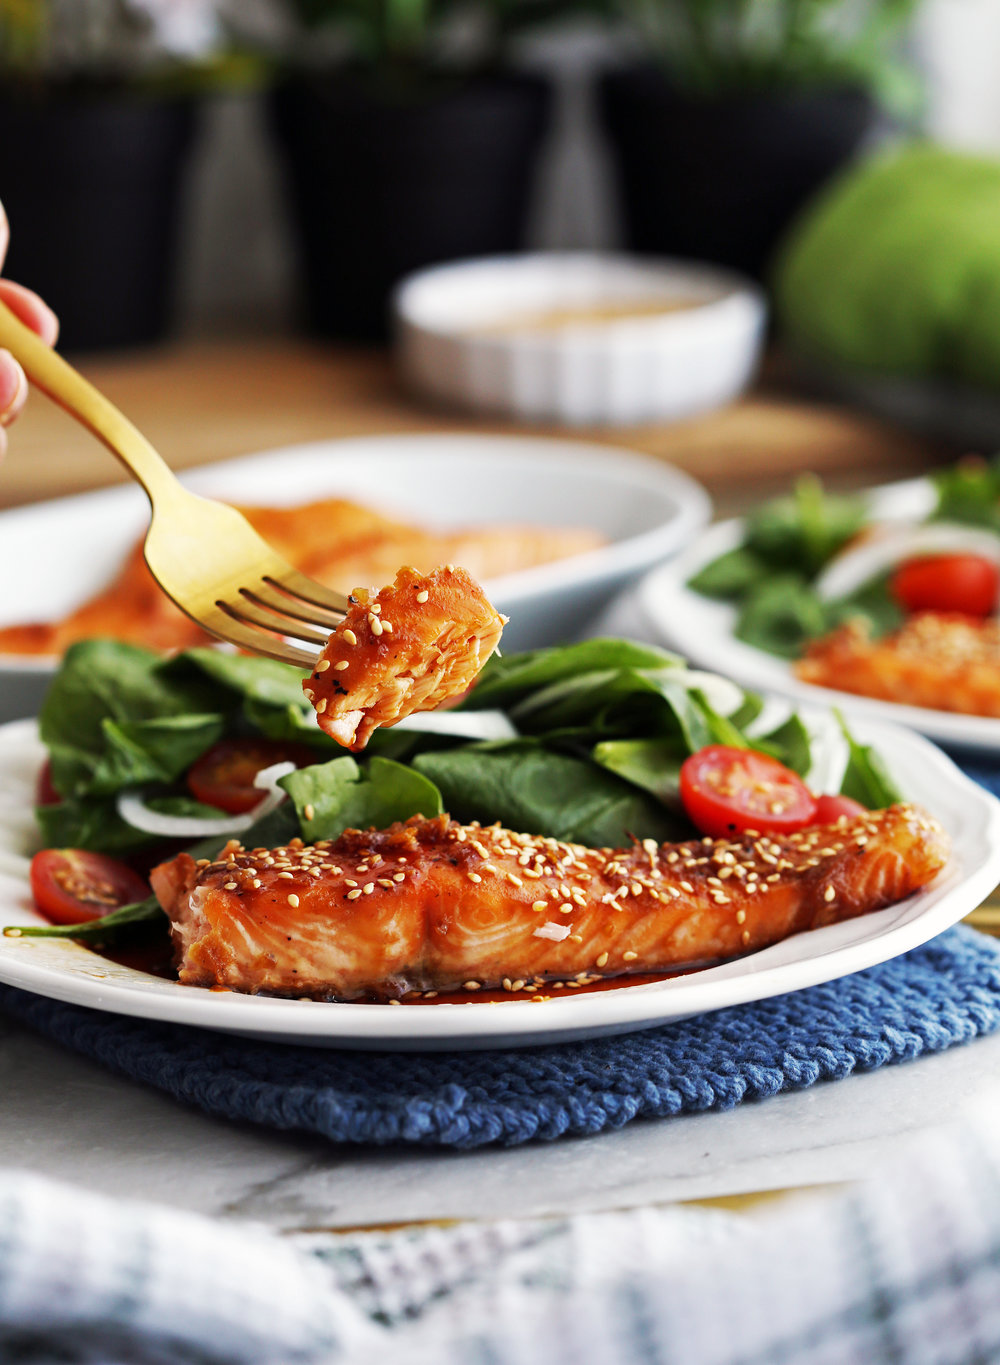 A piece of soy-maple salmon poked with a fork above a top of a plate of a baked salmon with spinach salad.